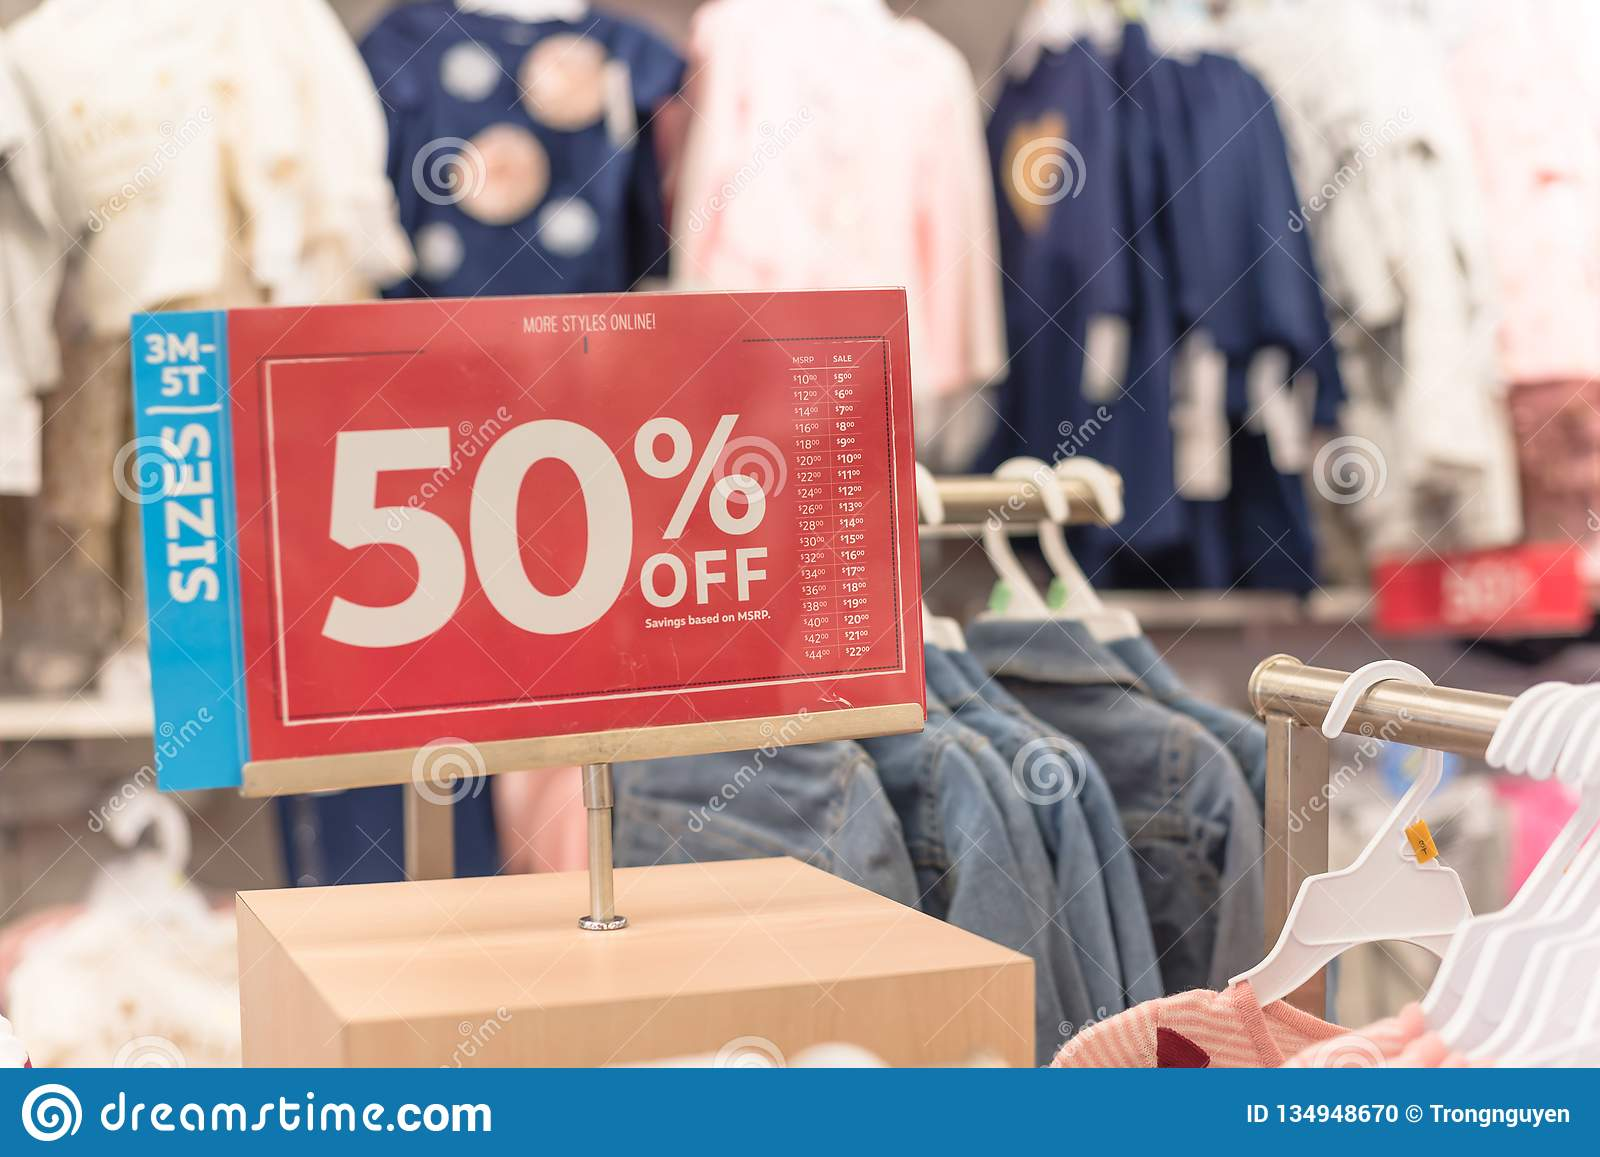 623686806 50 percent off sale sign over clothes at baby clothing store with customer  shopping